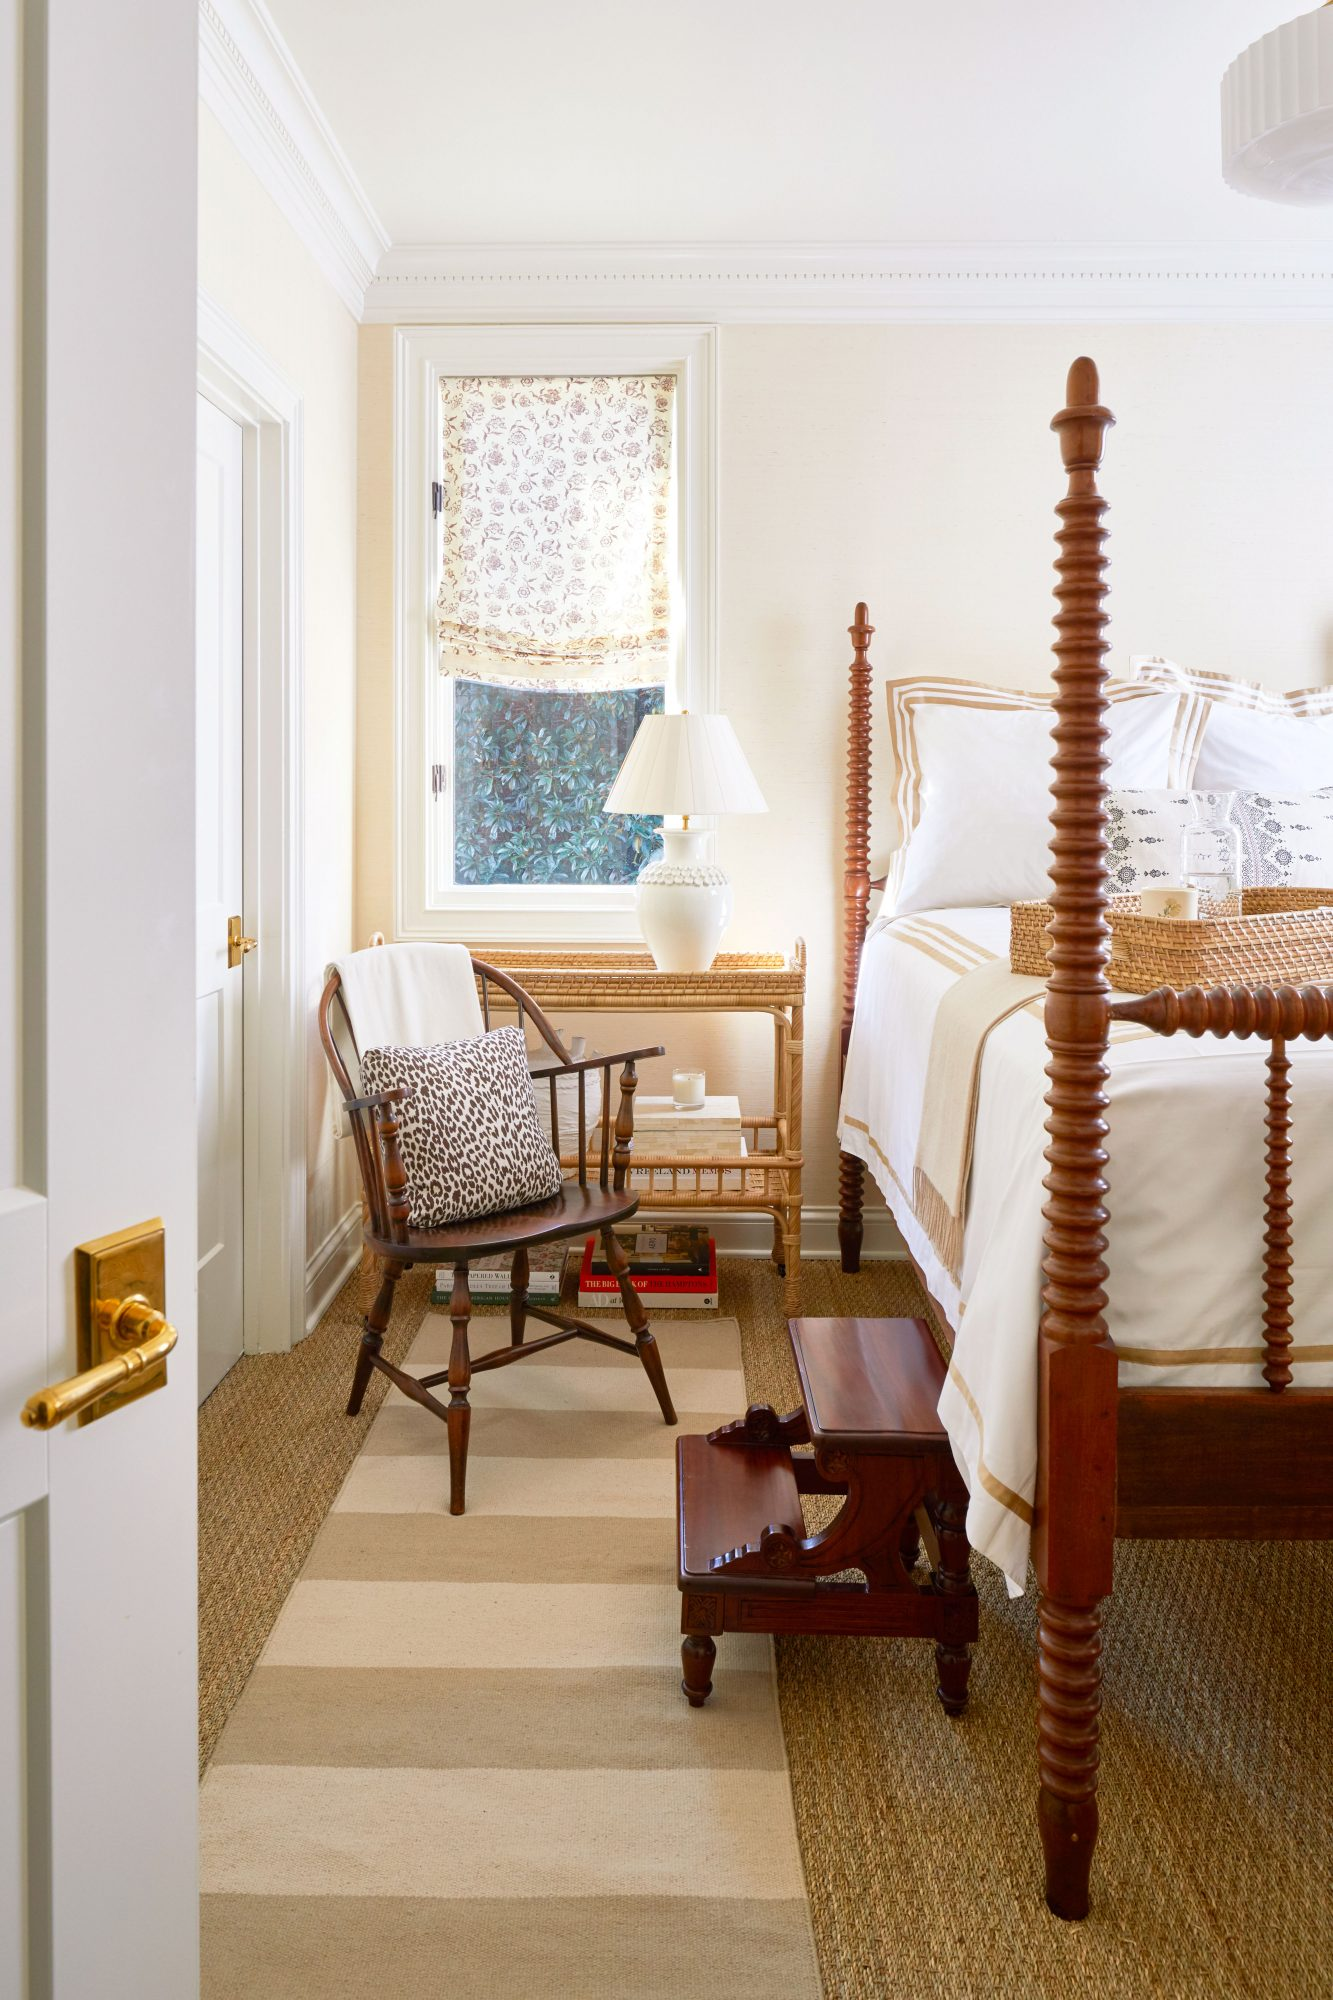 Welcoming guest room with four-poster spool bed and crisp white bedding